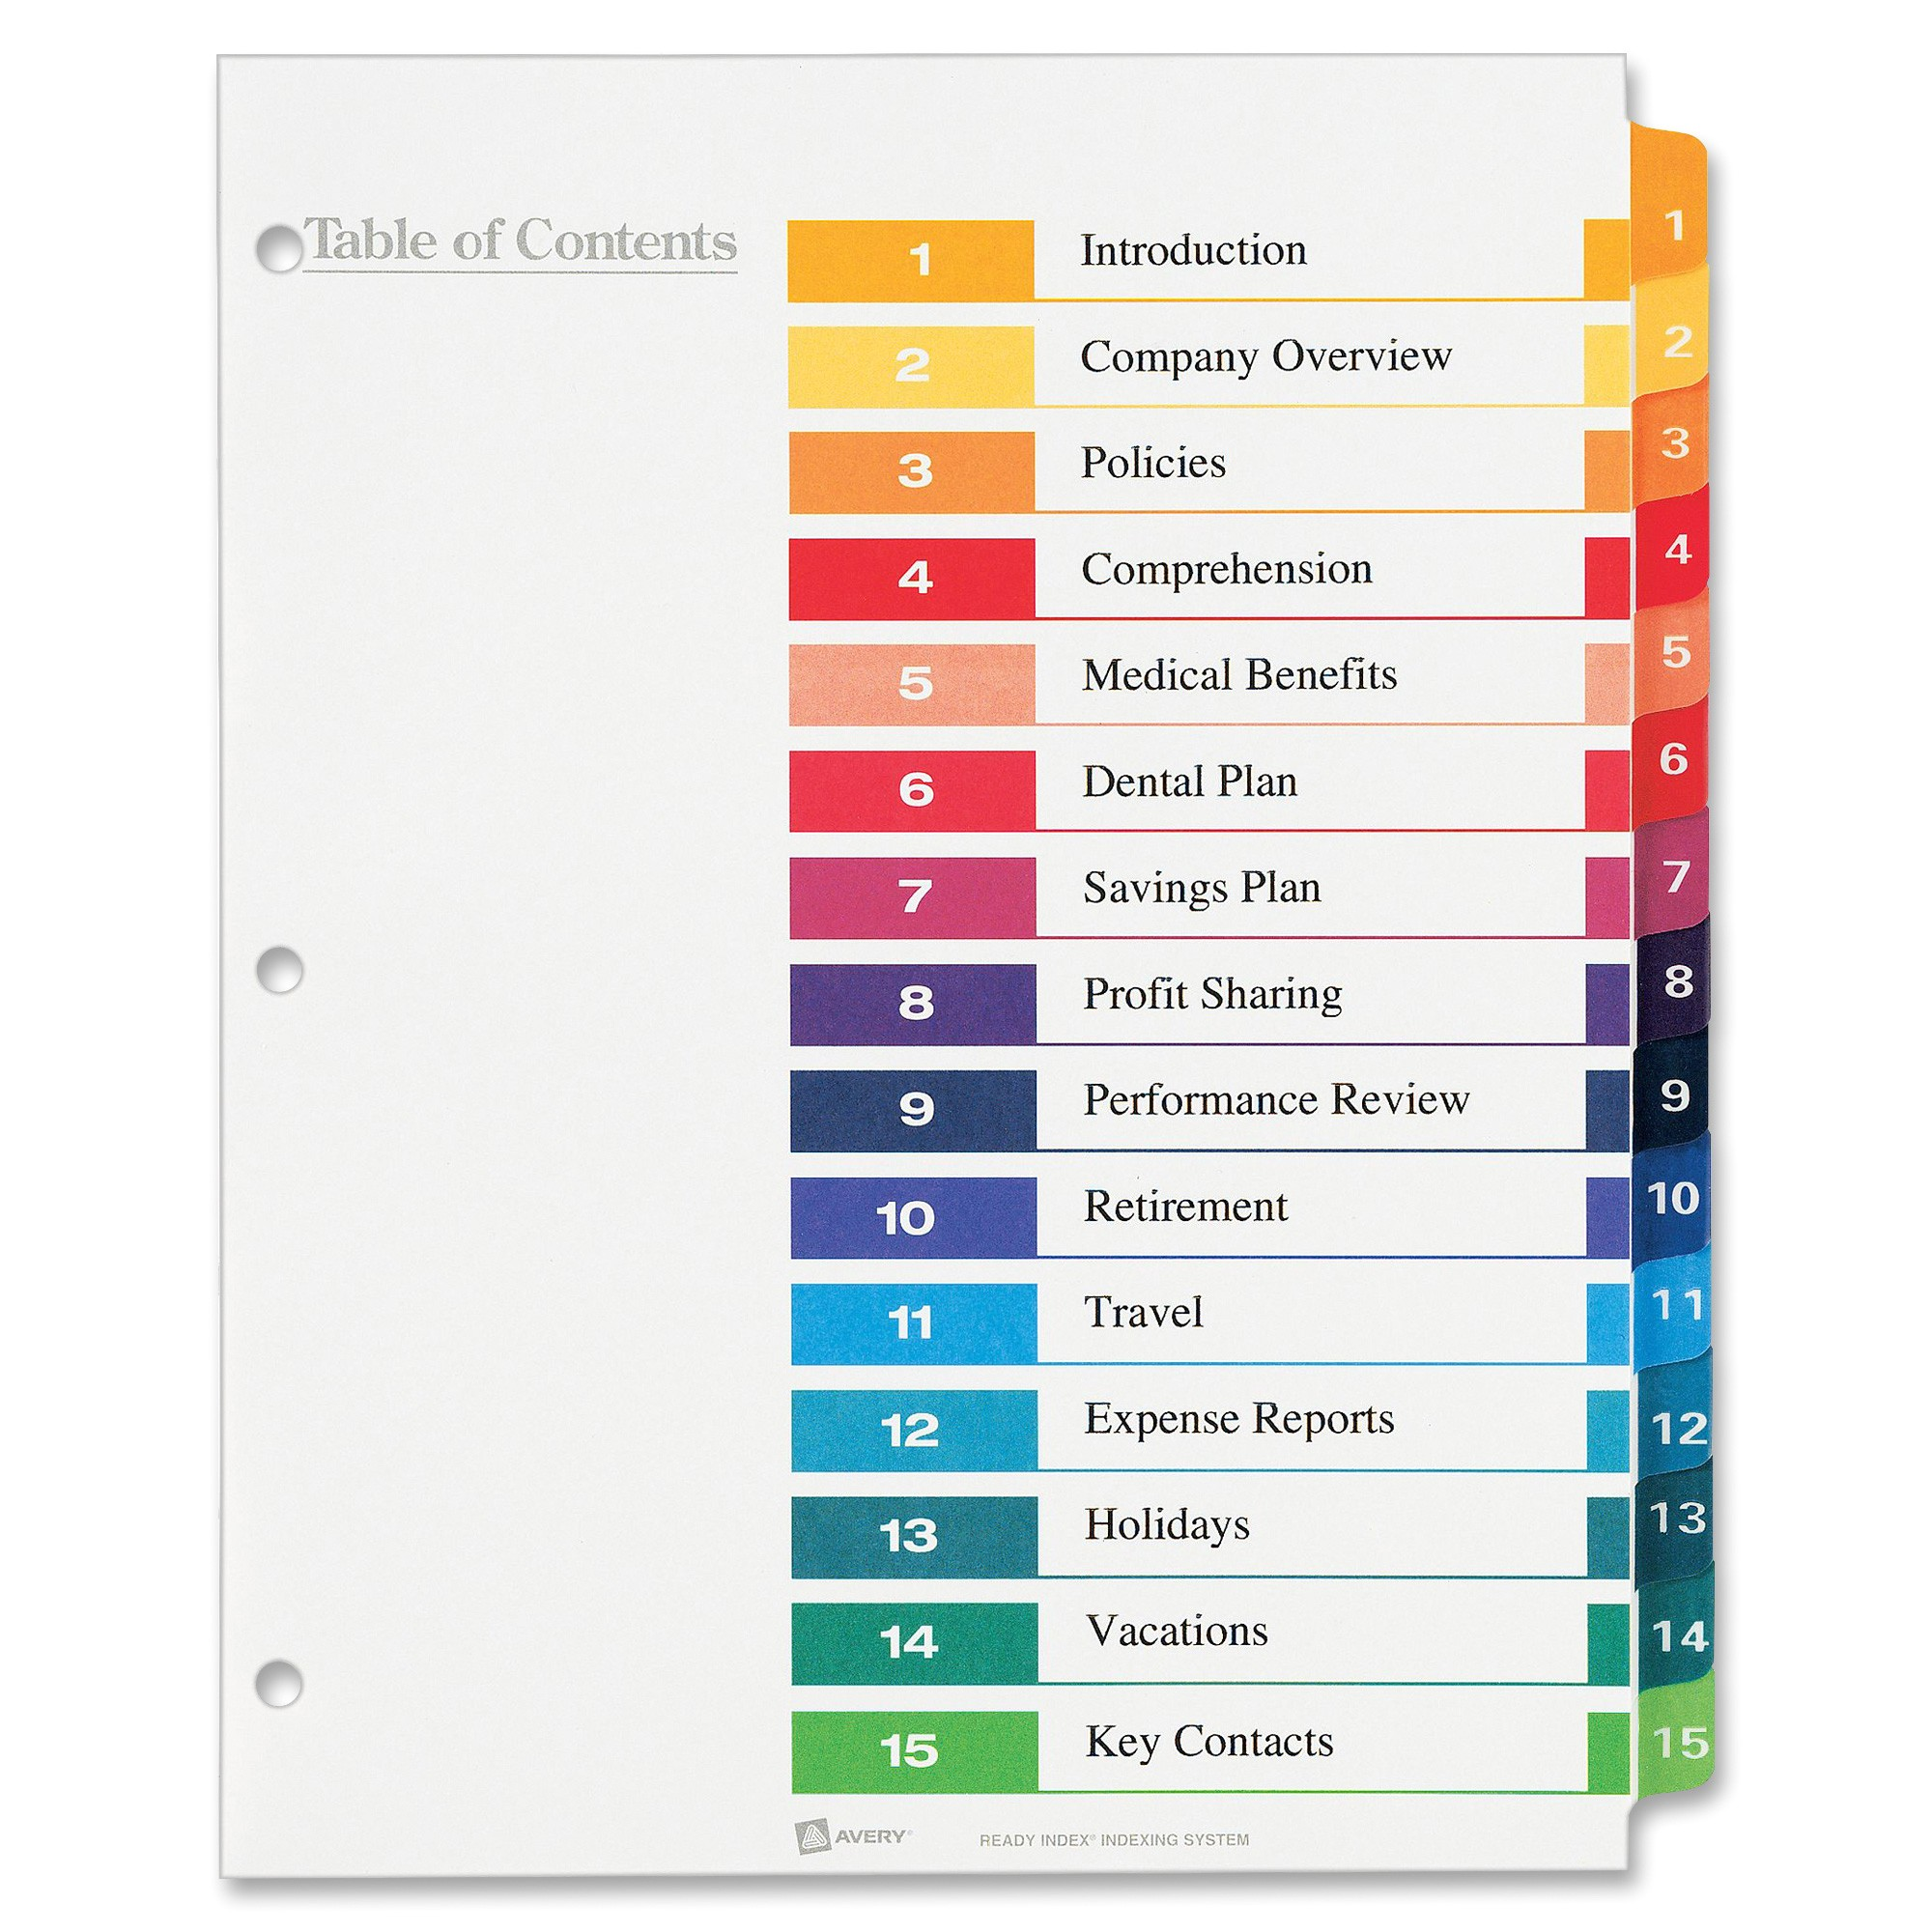 avery ready index customizable table of contents classic multicolor dividers ave11197